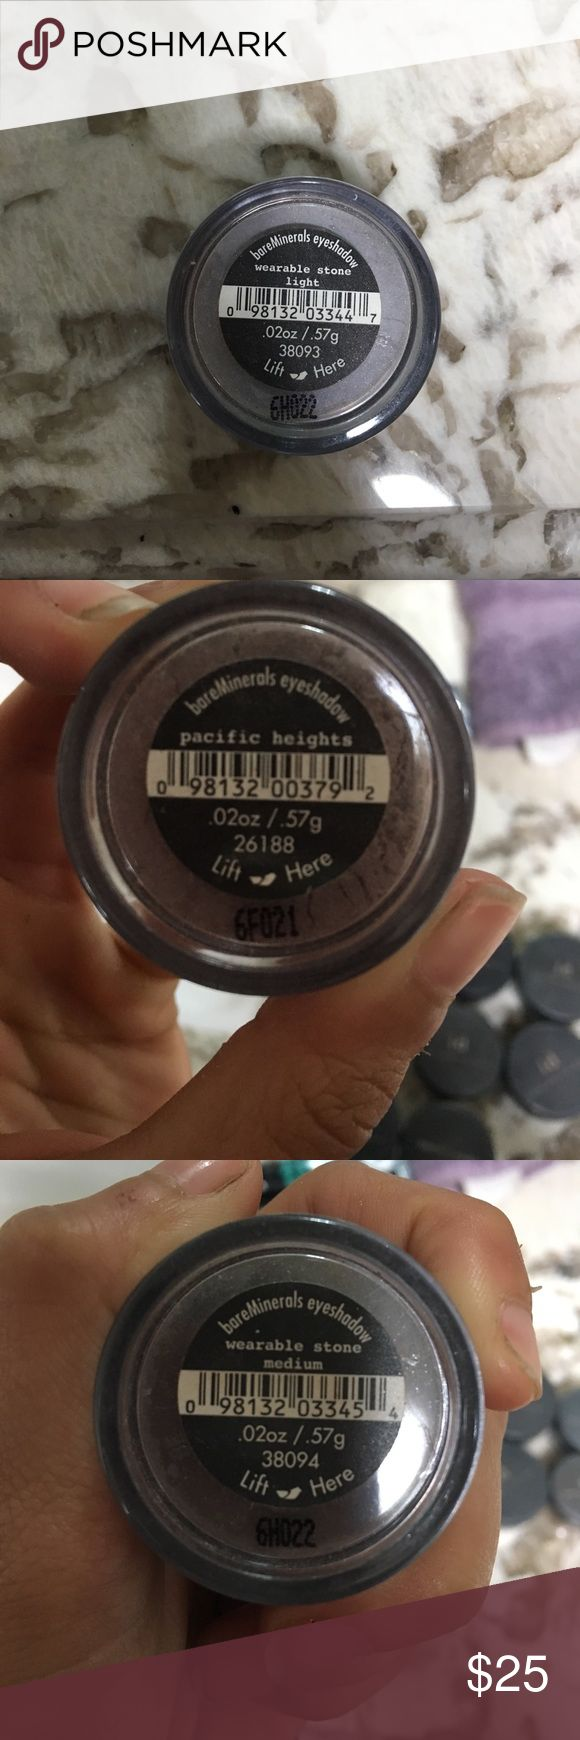 I.d bare minerals eye shadow Each for $3 or $25 for all 8! Hardly ever worn! Makeup Eyeshadow